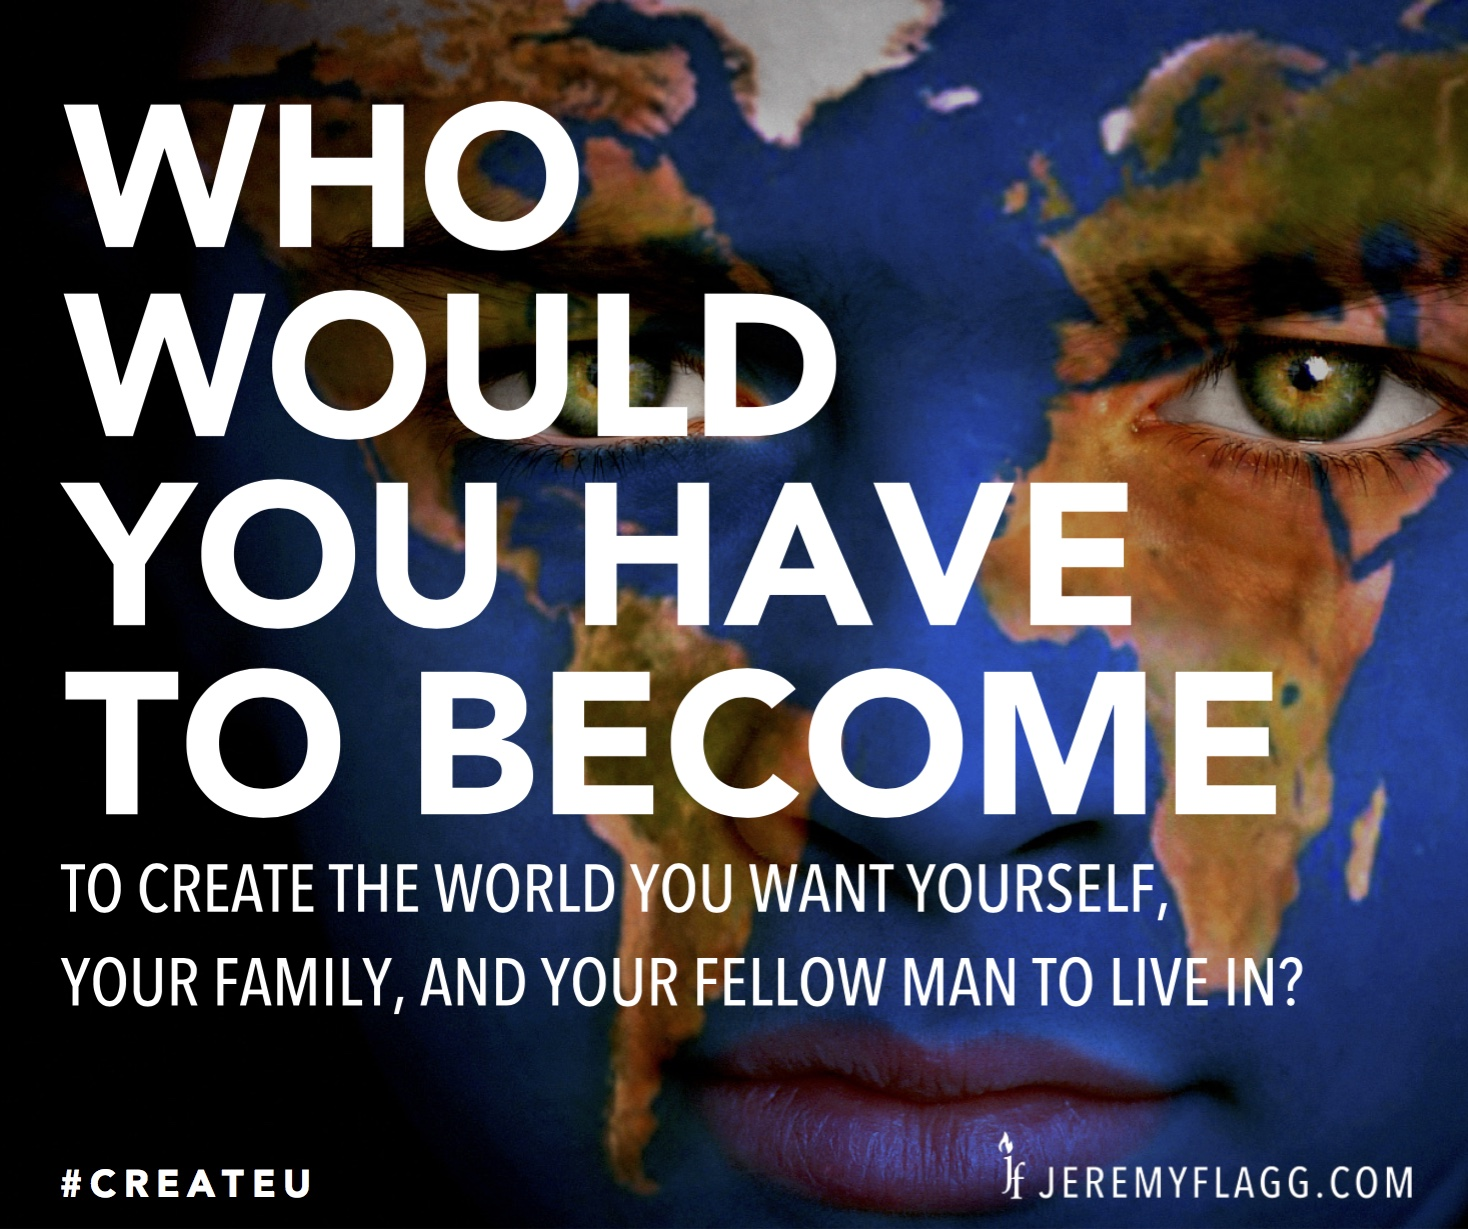 Who-would-you-have-to-become-quote-Jeremy-Flagg-FB